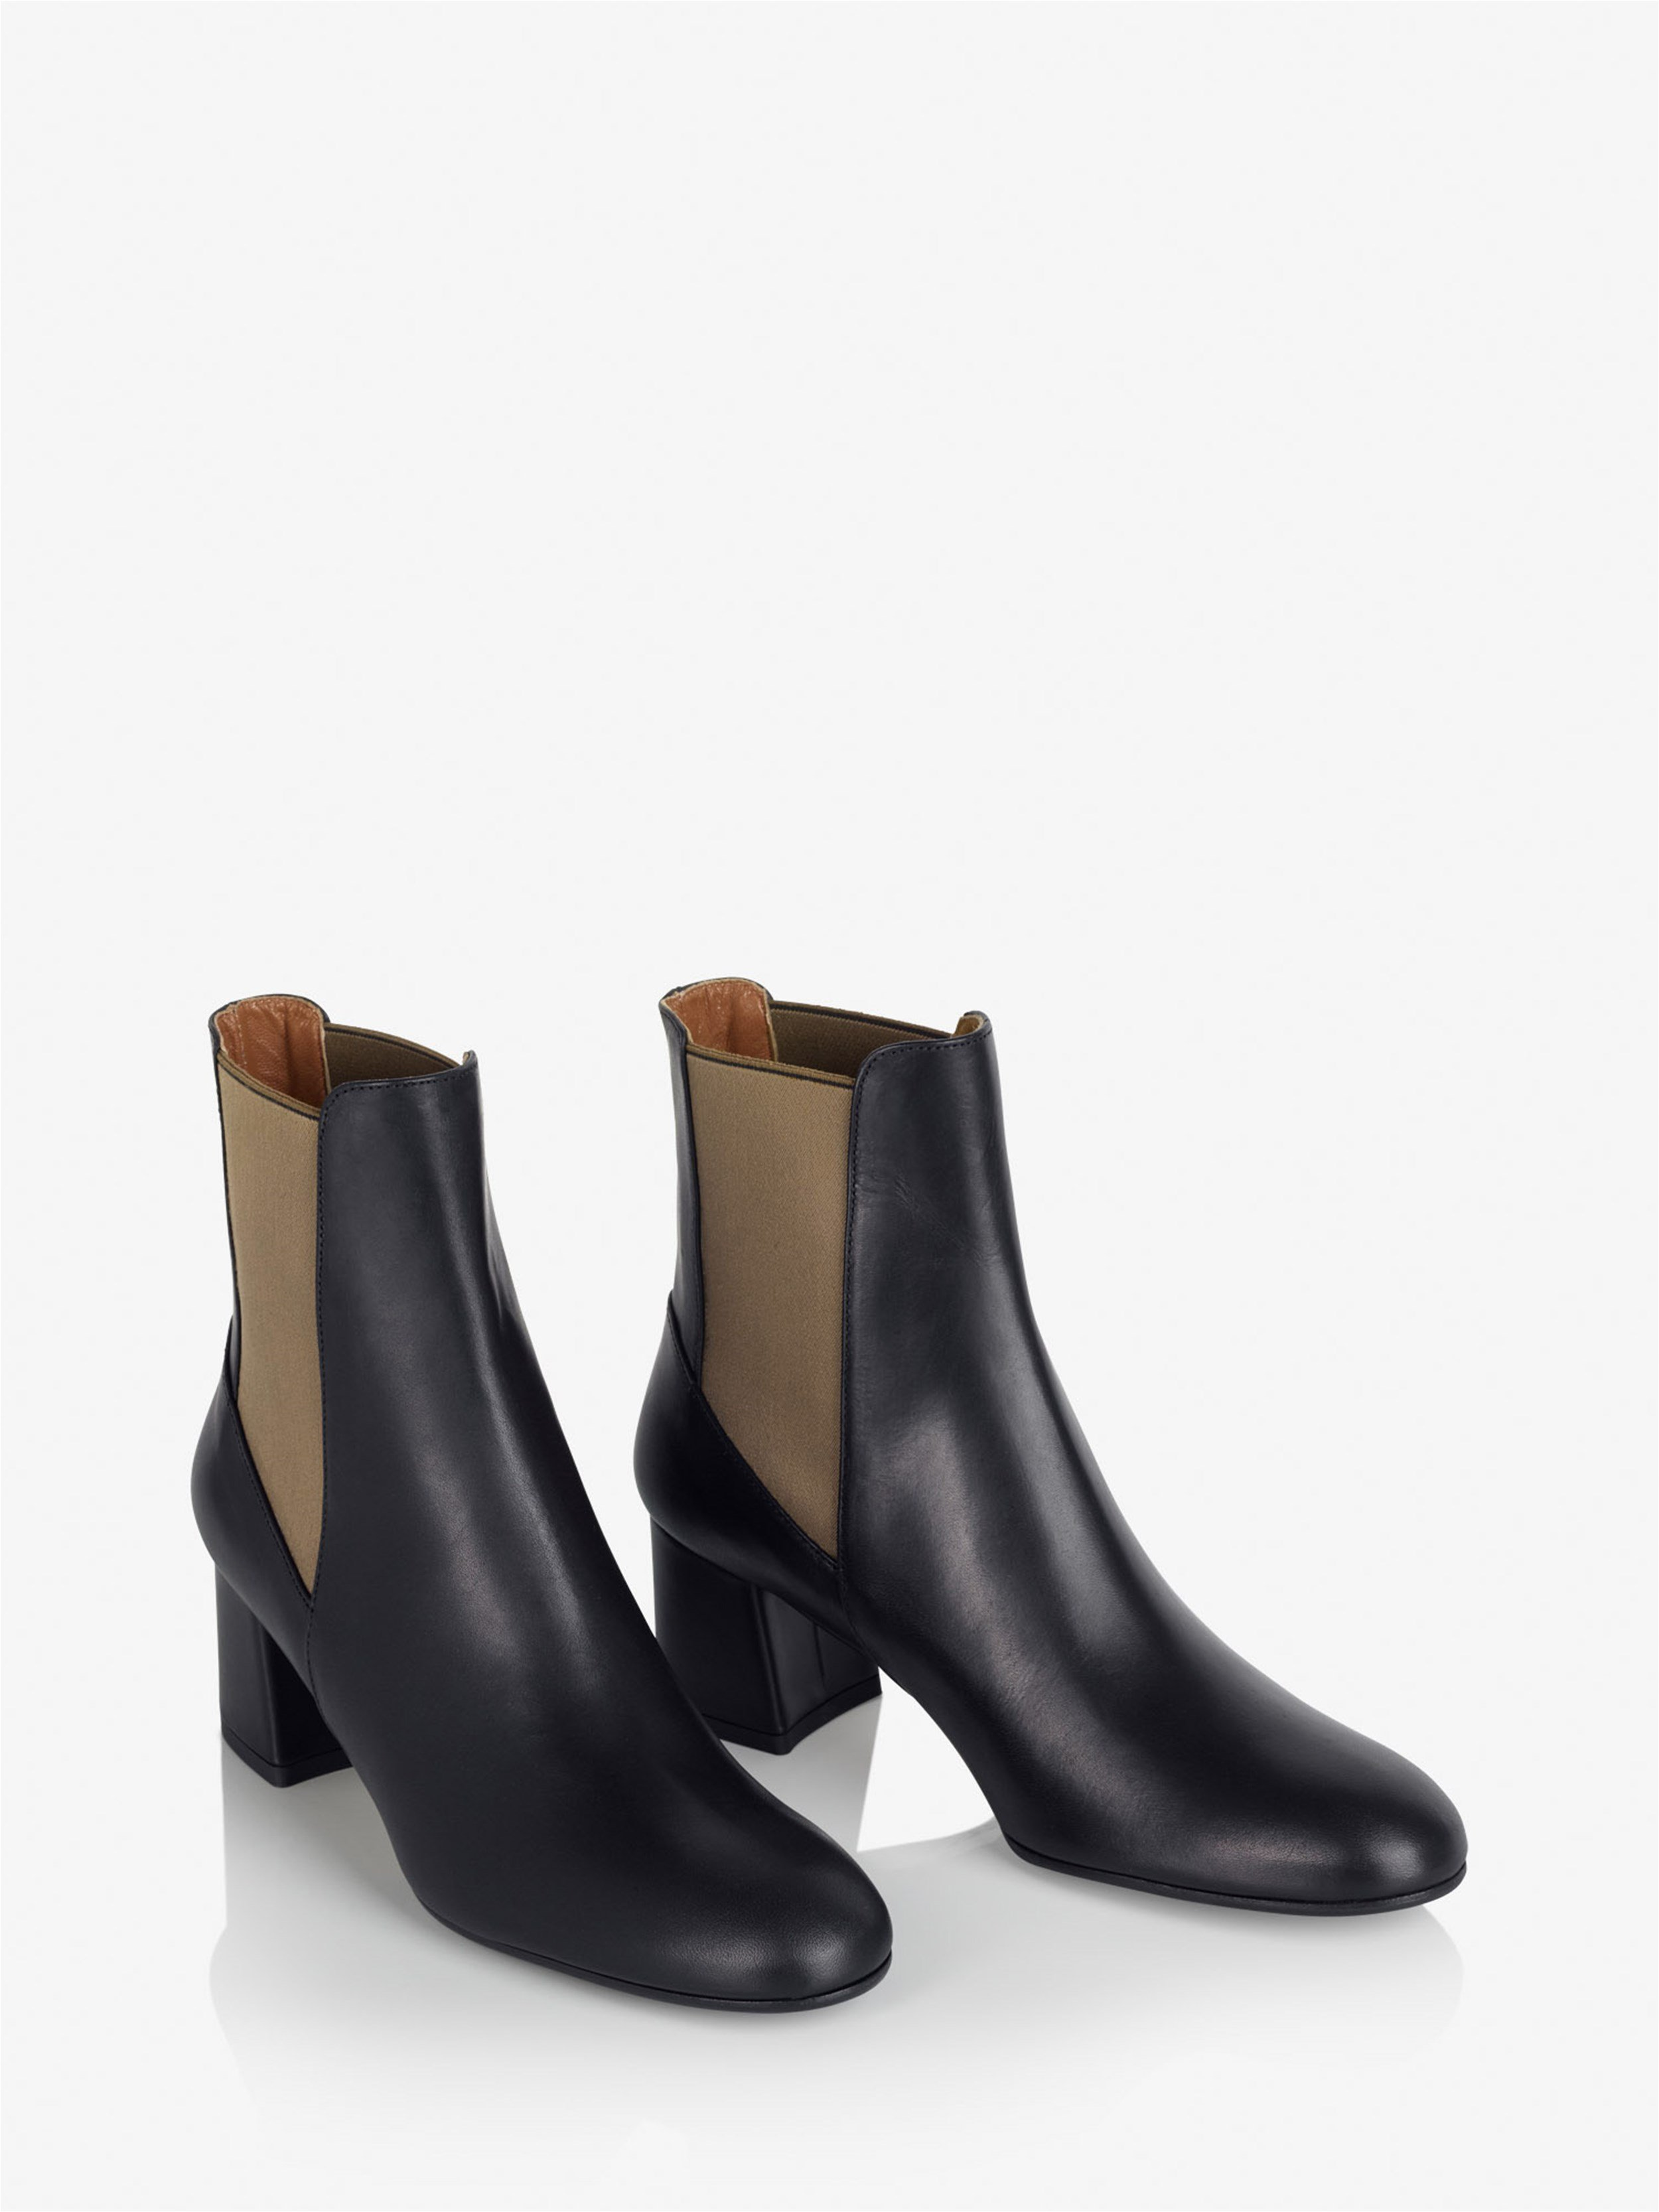 013ad9db807 Altea Black Ankle boots